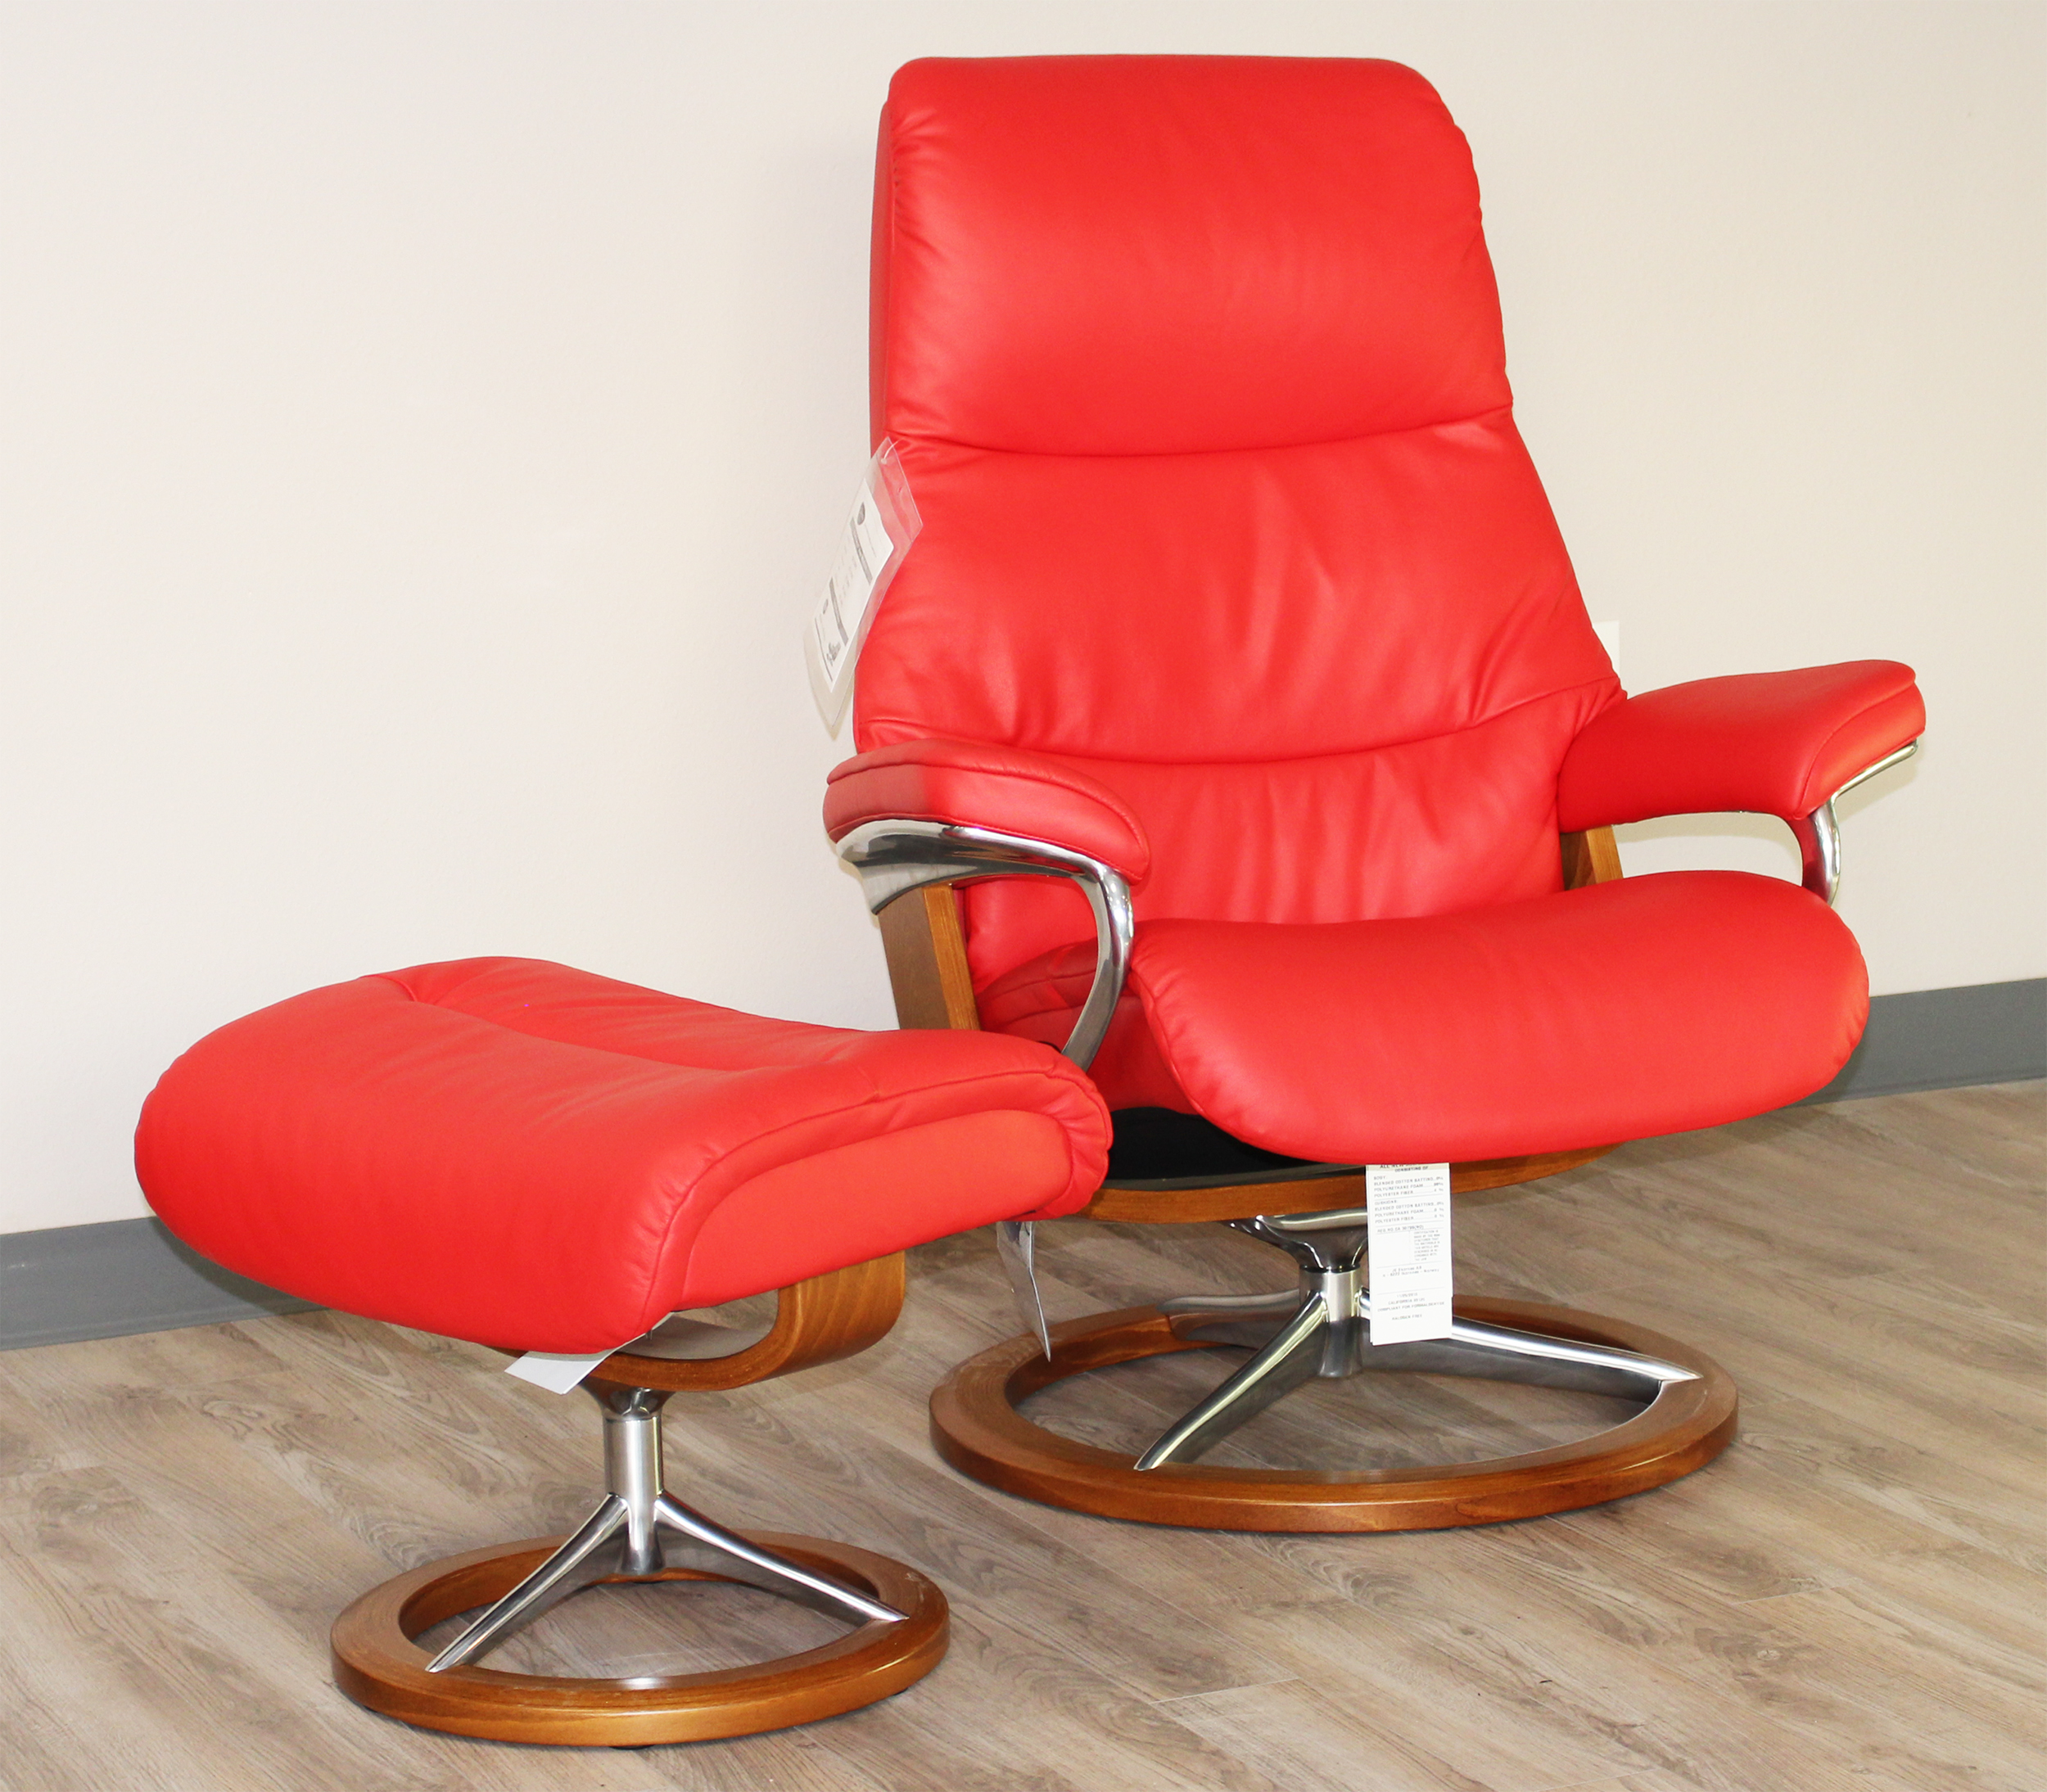 Stressless View Signature Base Medium Paloma Tomato Red Leather Recliner Chair by Ekornes & Stressless View Signature Base Medium Paloma Tomato Red Leather by ... islam-shia.org